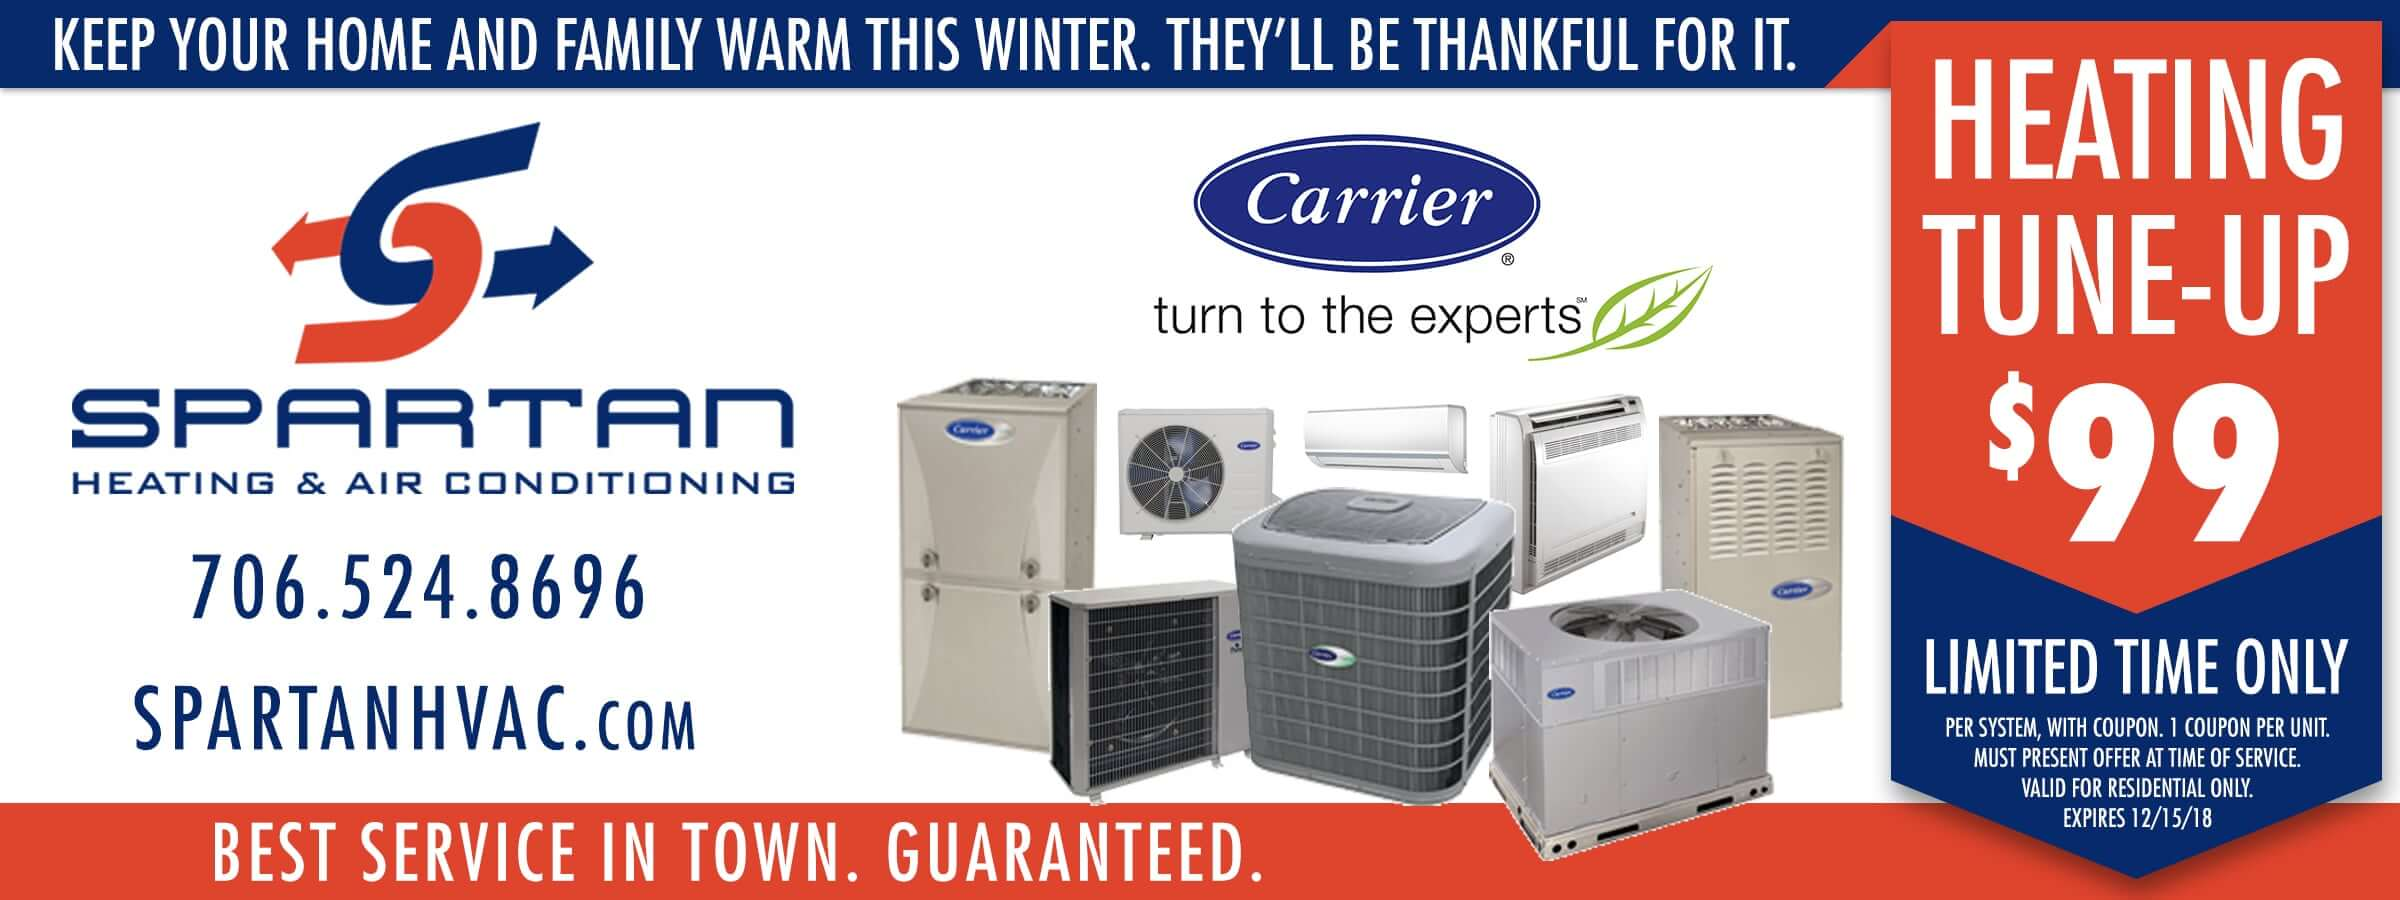 Spartan HVAC coupon 2018